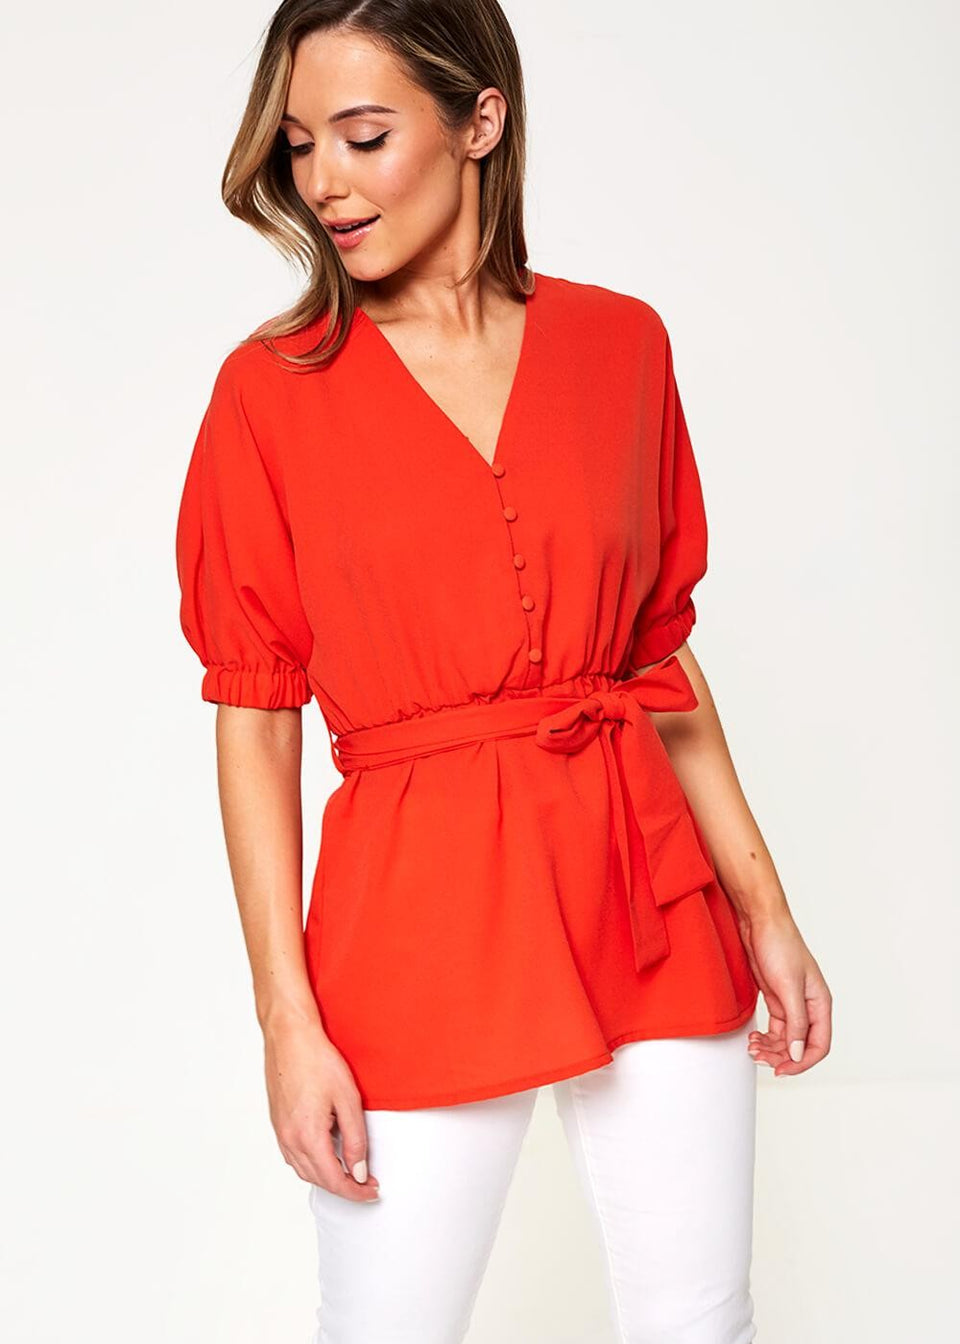 25787a388dafec Marc Angelo Tops Collection